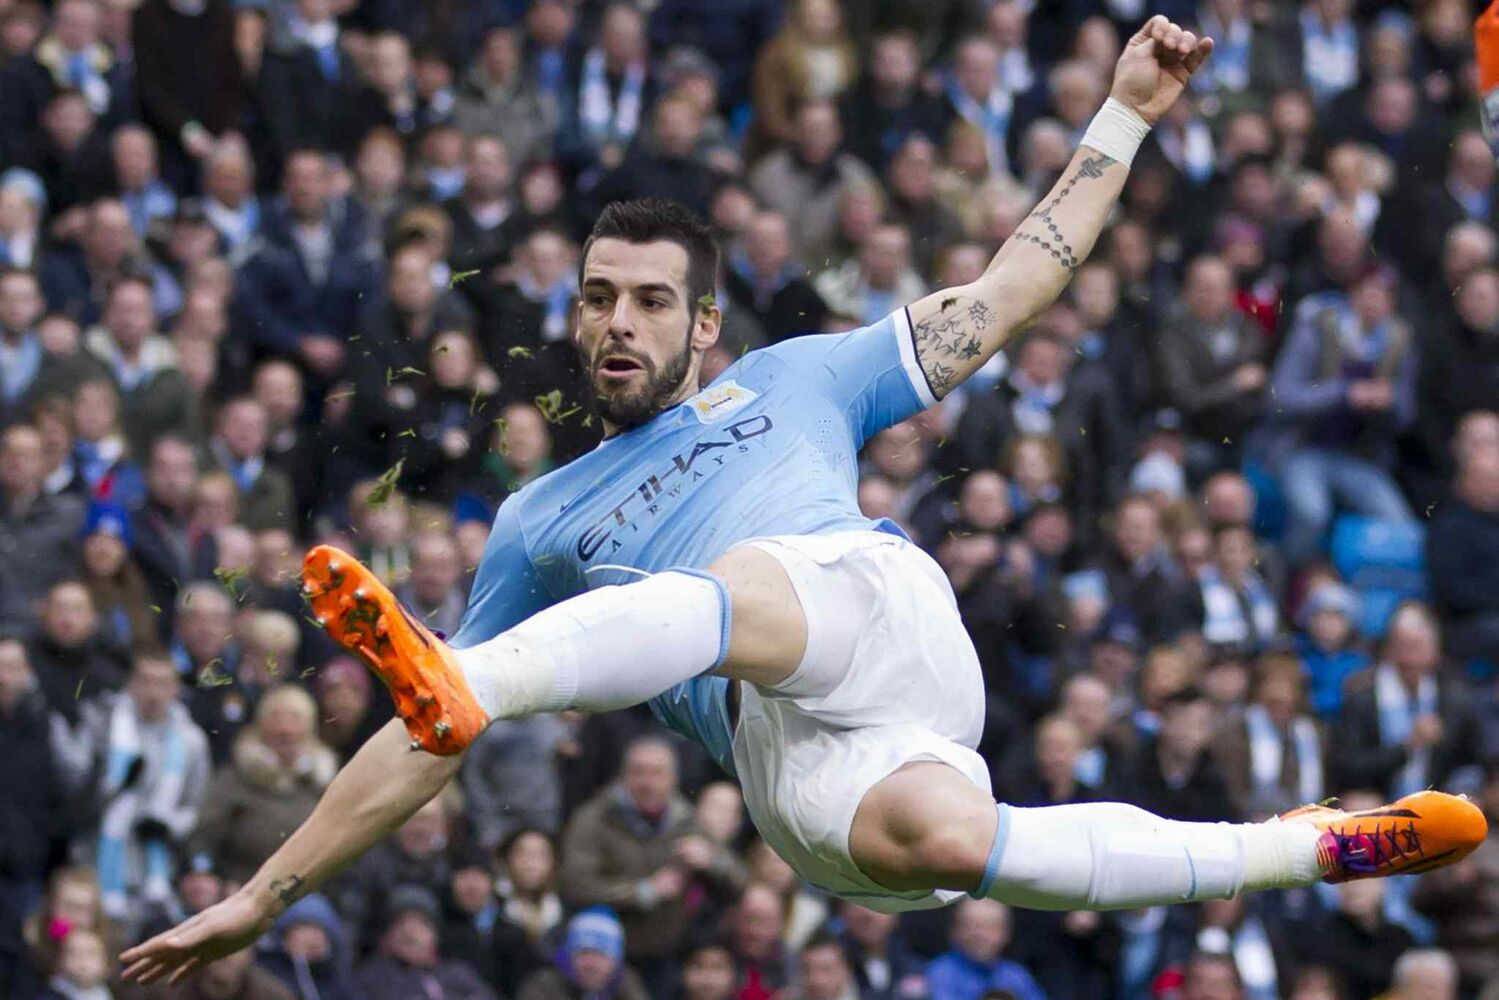 Manchester City's Alvaro Negredo scores against Tottenham Hotspur during an English Premier League soccer match at the Etihad Stadium, Manchester, England on Sunday.